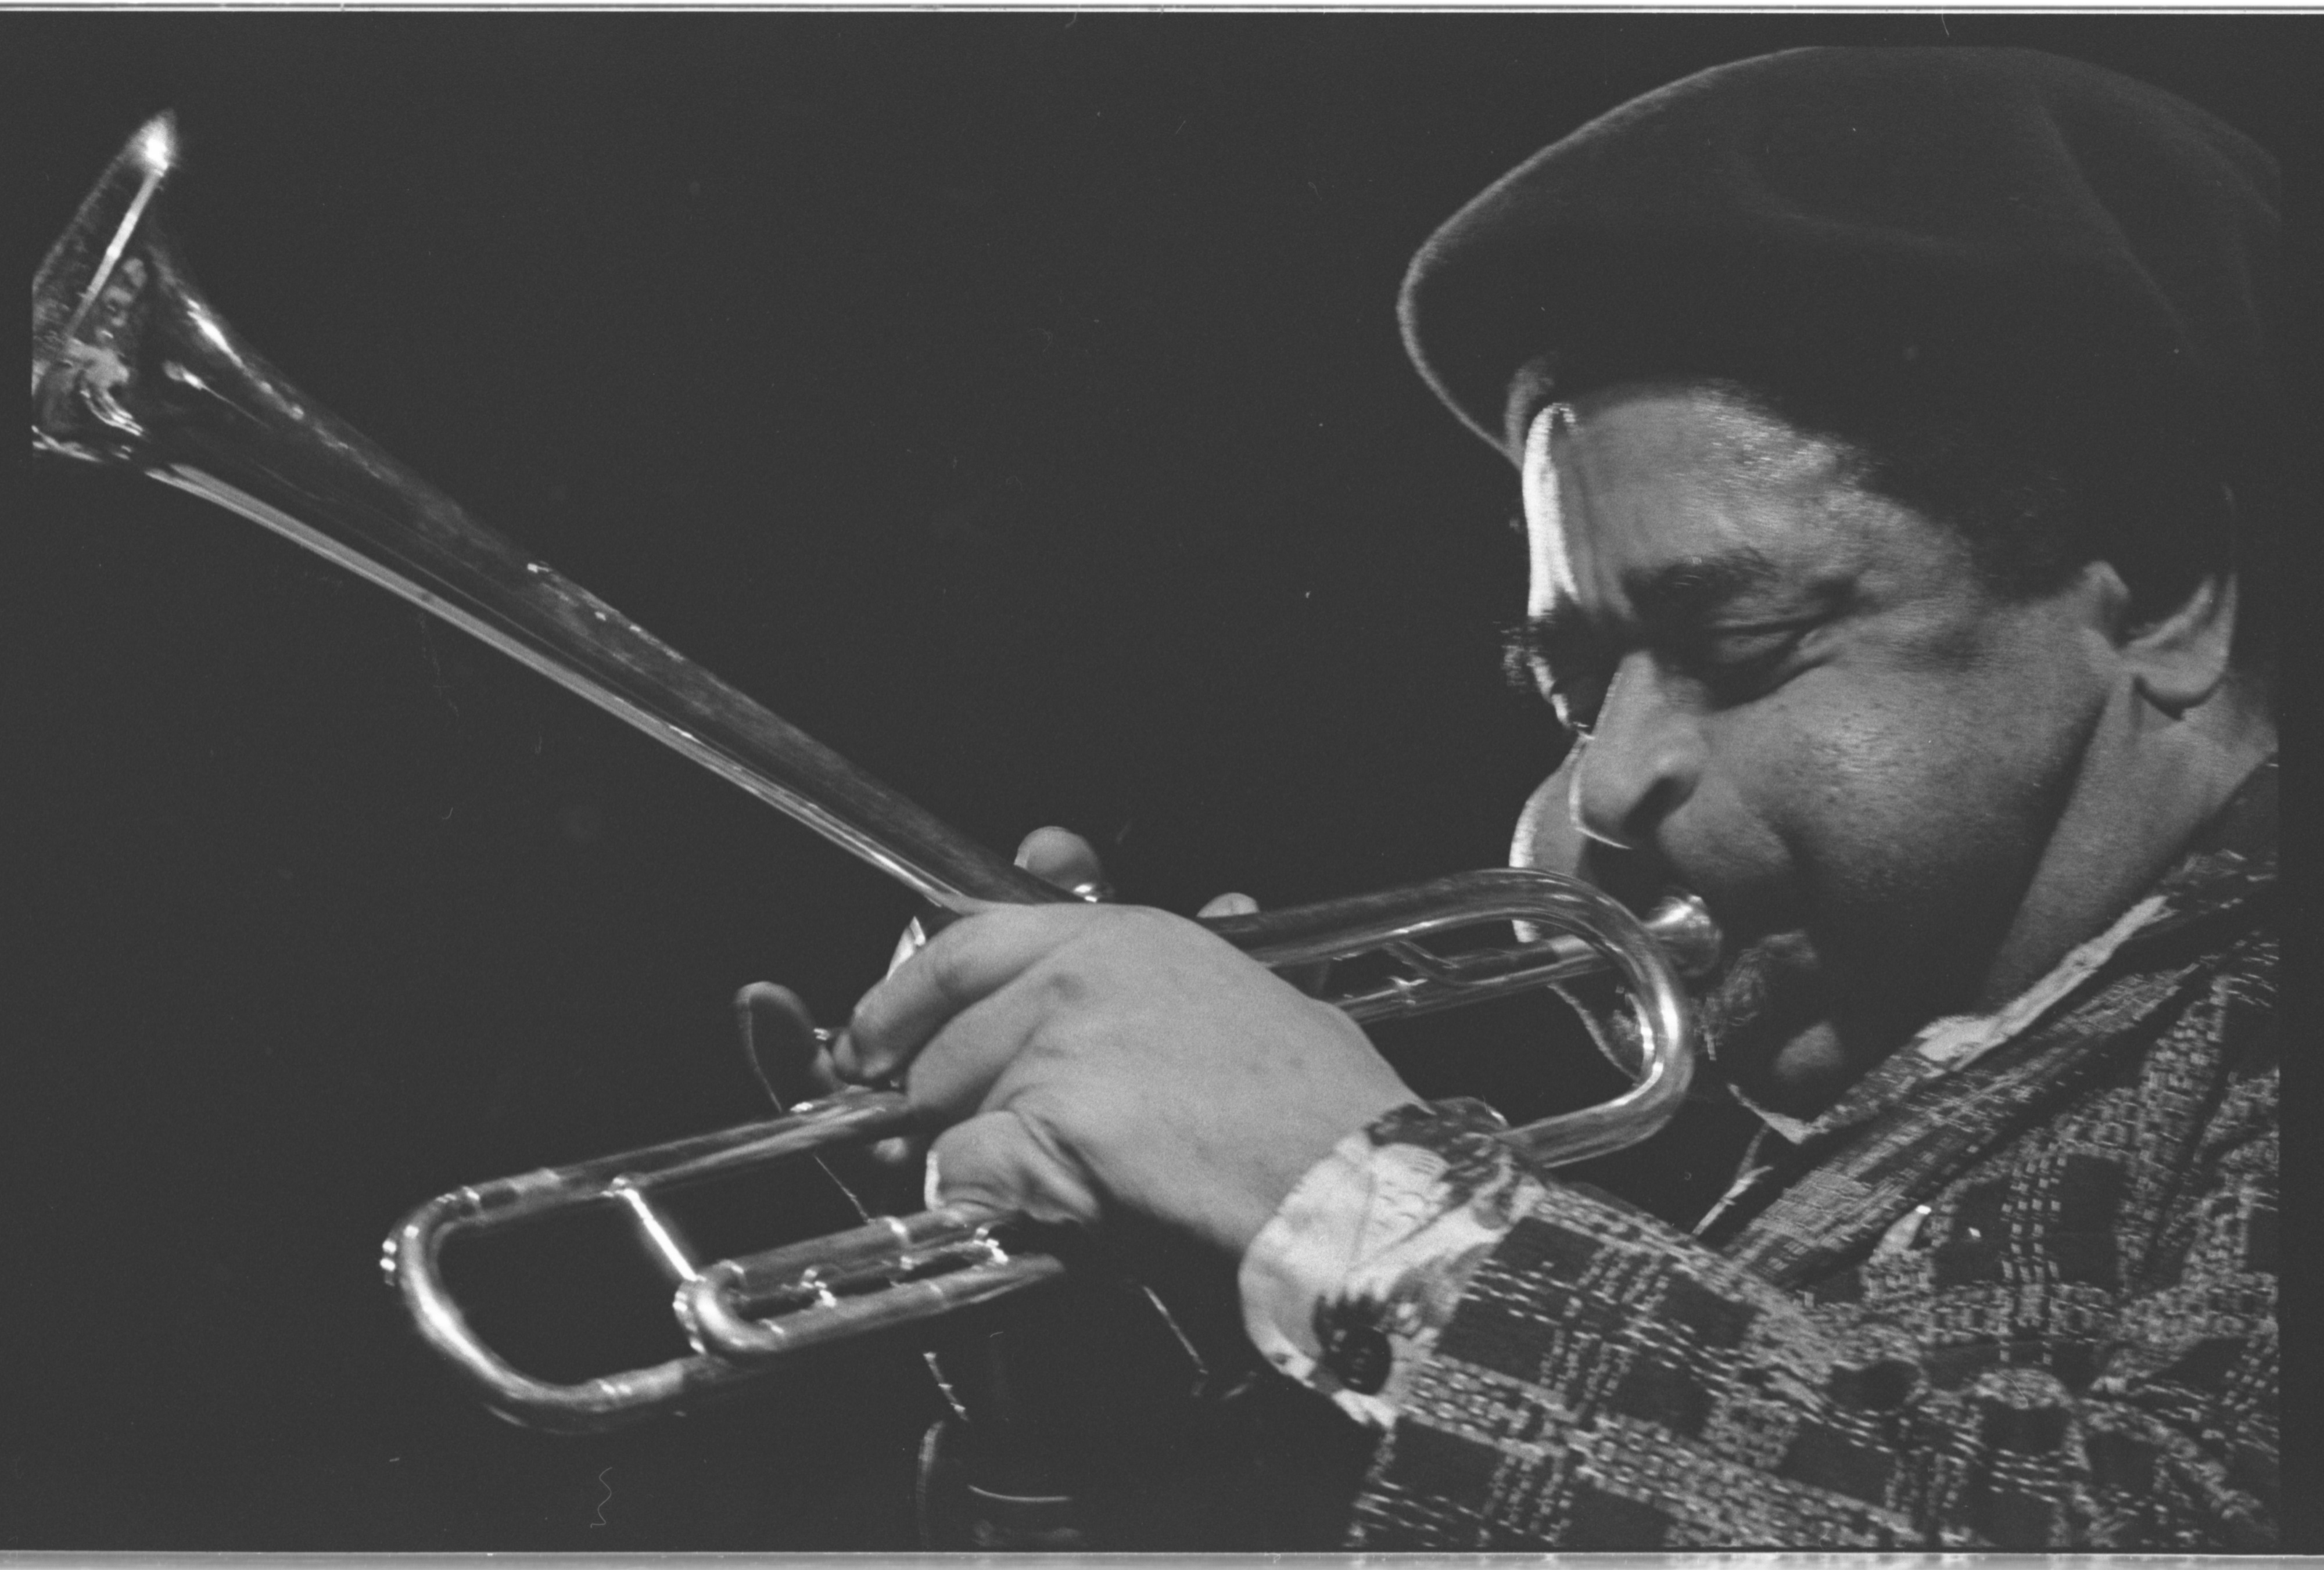 Dizzy Gillespie in Concert, Michigan League Ballroom, January 14, 1977 image